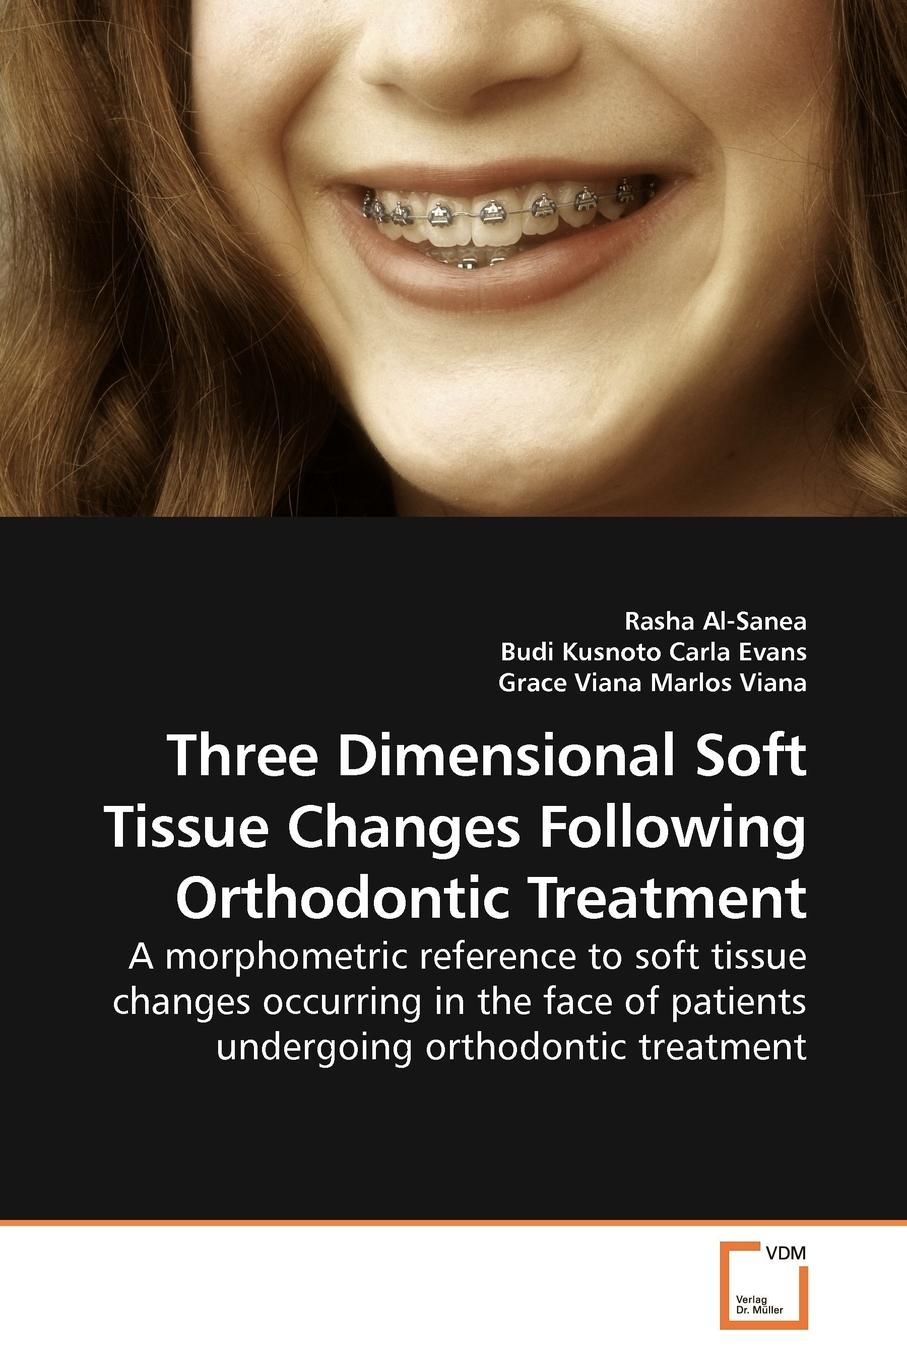 лучшая цена Rasha Al-Sanea Three Dimensional Soft Tissue Changes Following Orthodontic Treatment